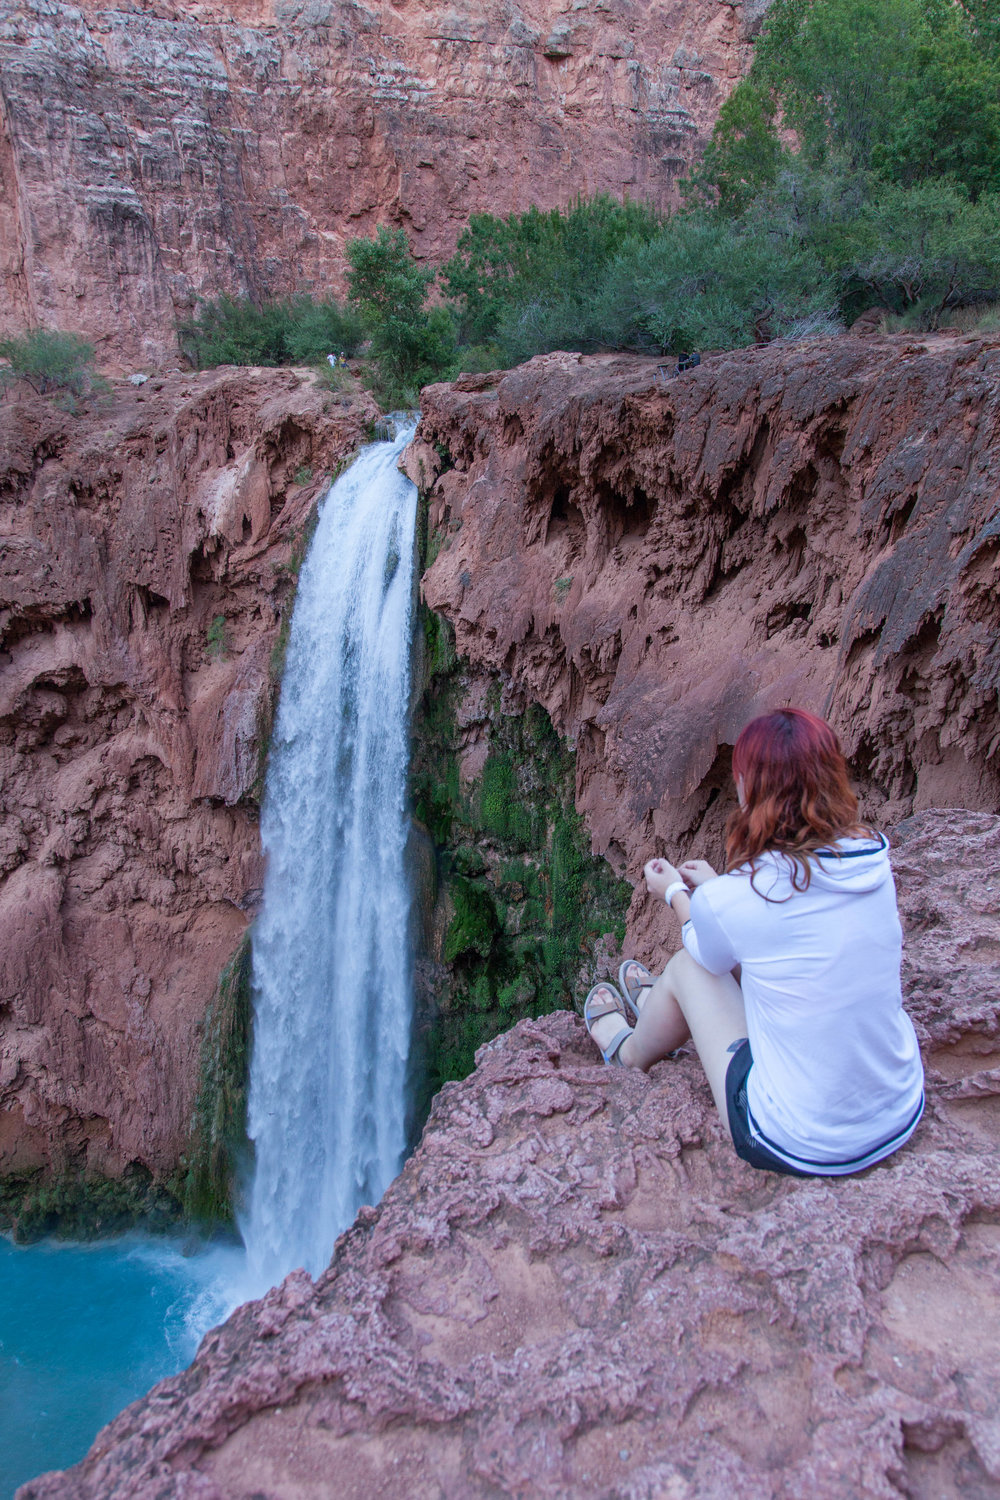 View from above Mooney Falls at the end of the campground